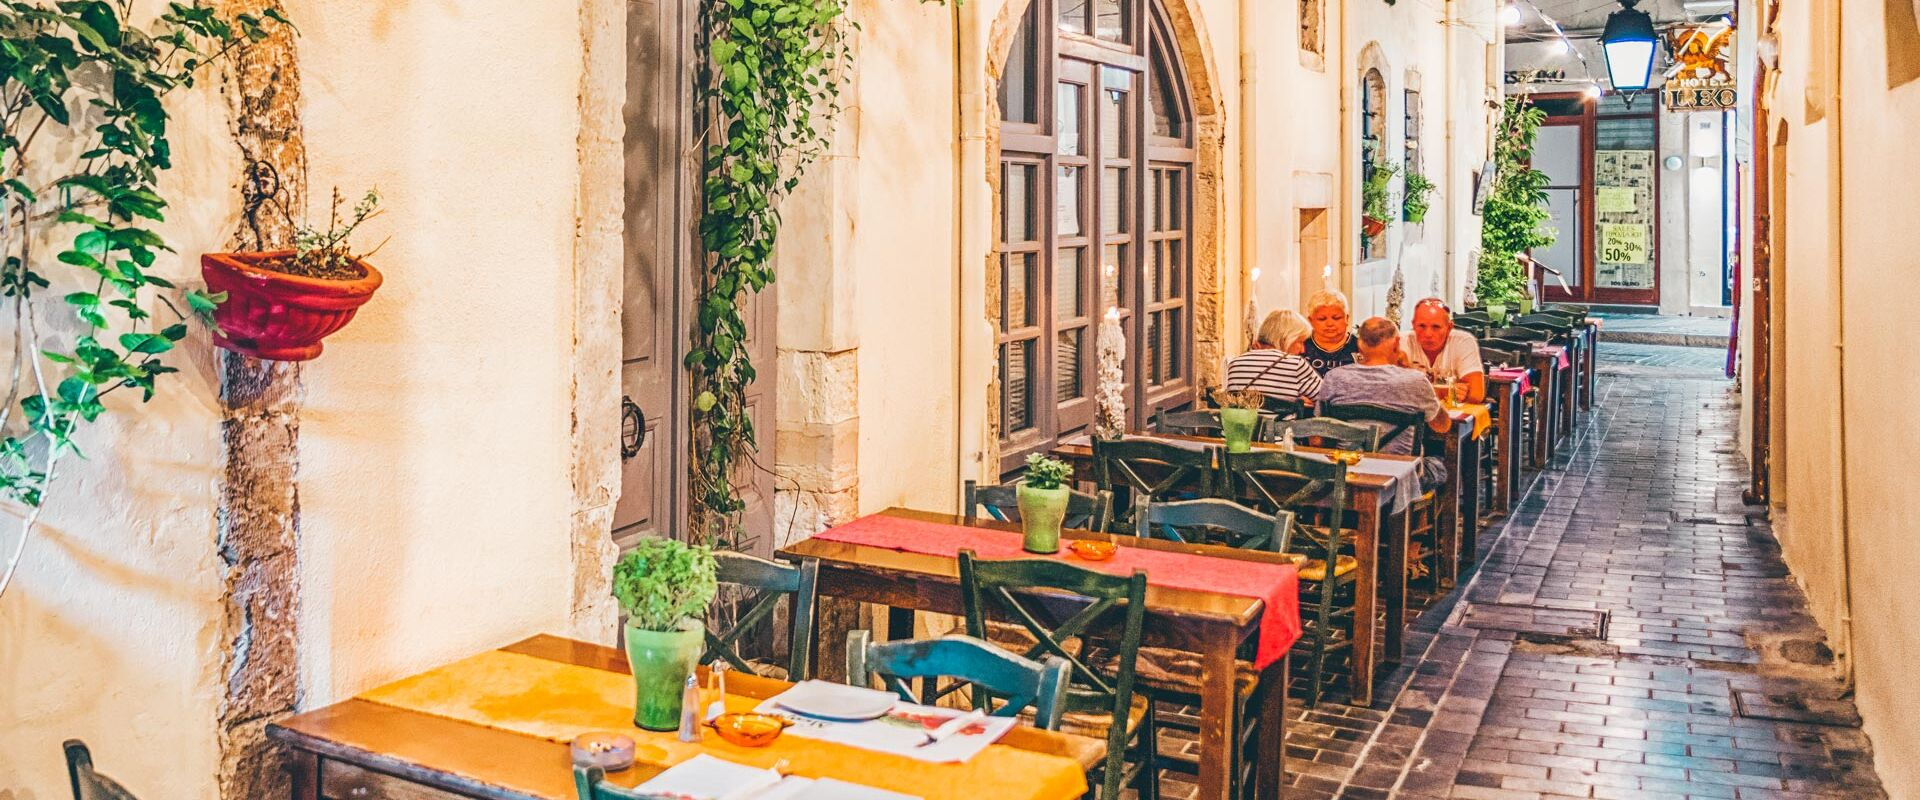 The heart of the historic centre of Rethymno, filled with shops with local products, cafes and tavernas